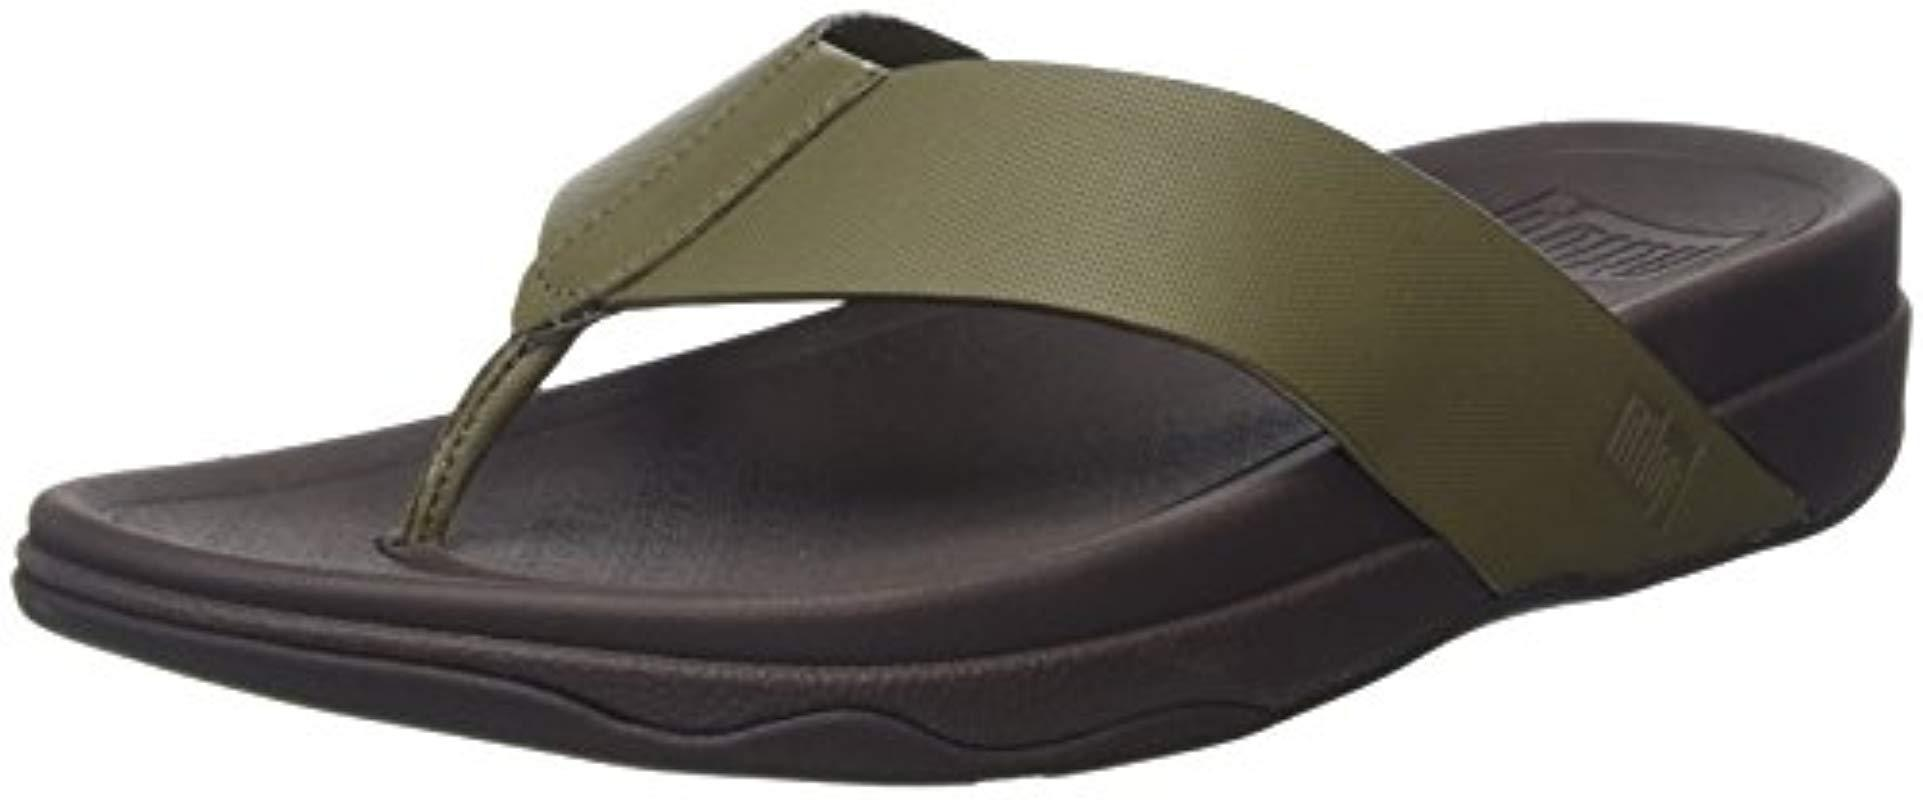 d39ab2d48fd Fitflop Surfer (leather) Open-toe Sandals in Green for Men - Lyst